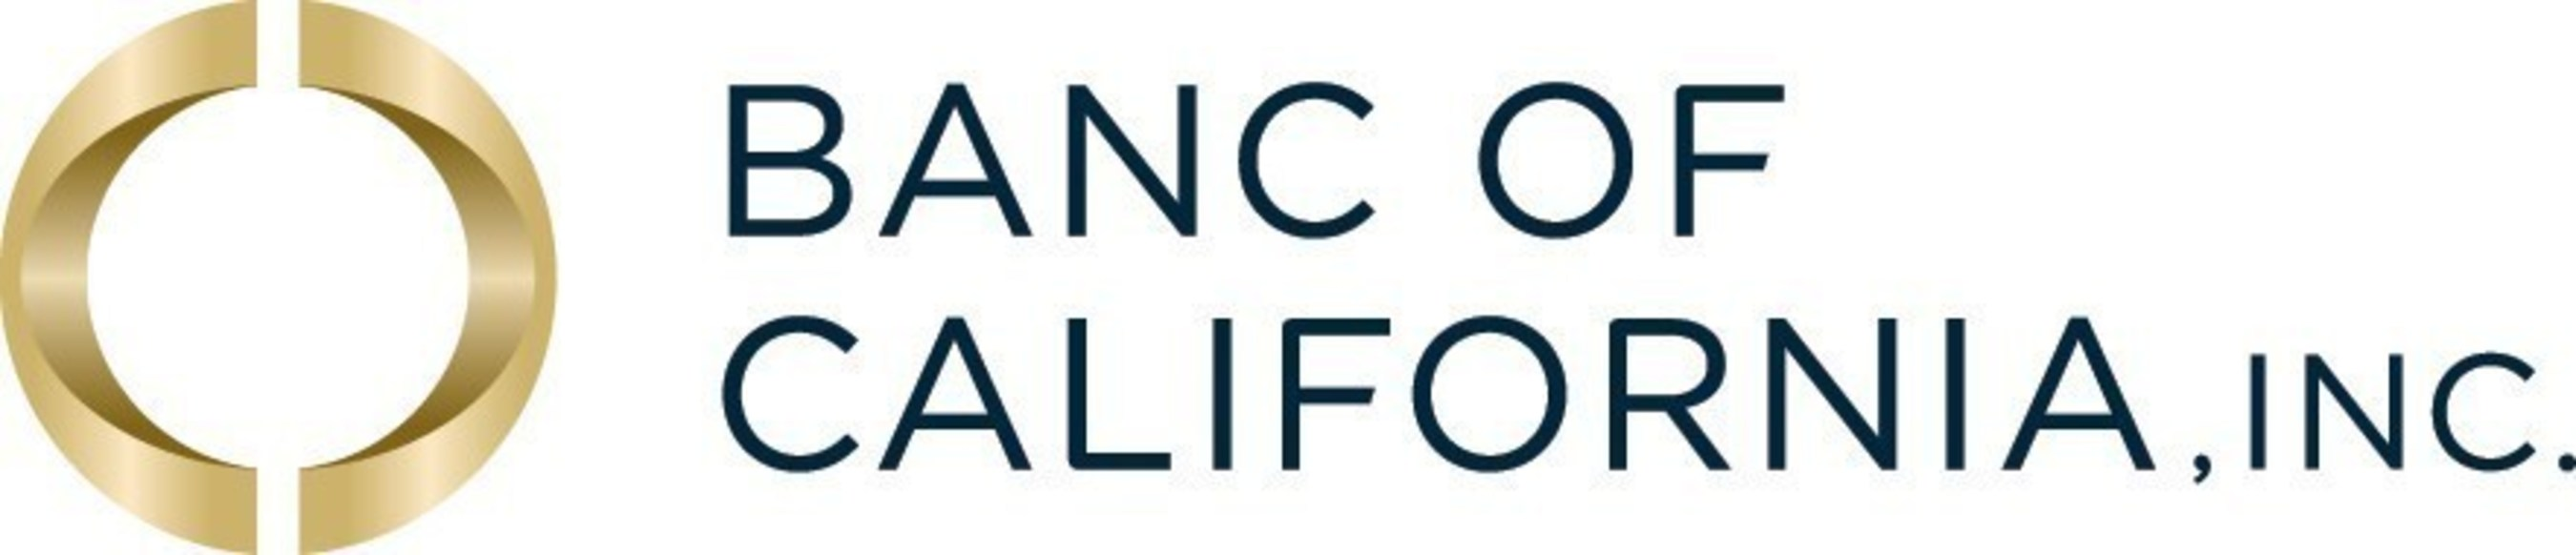 Banc of California Announces Pricing of Common Stock Offering